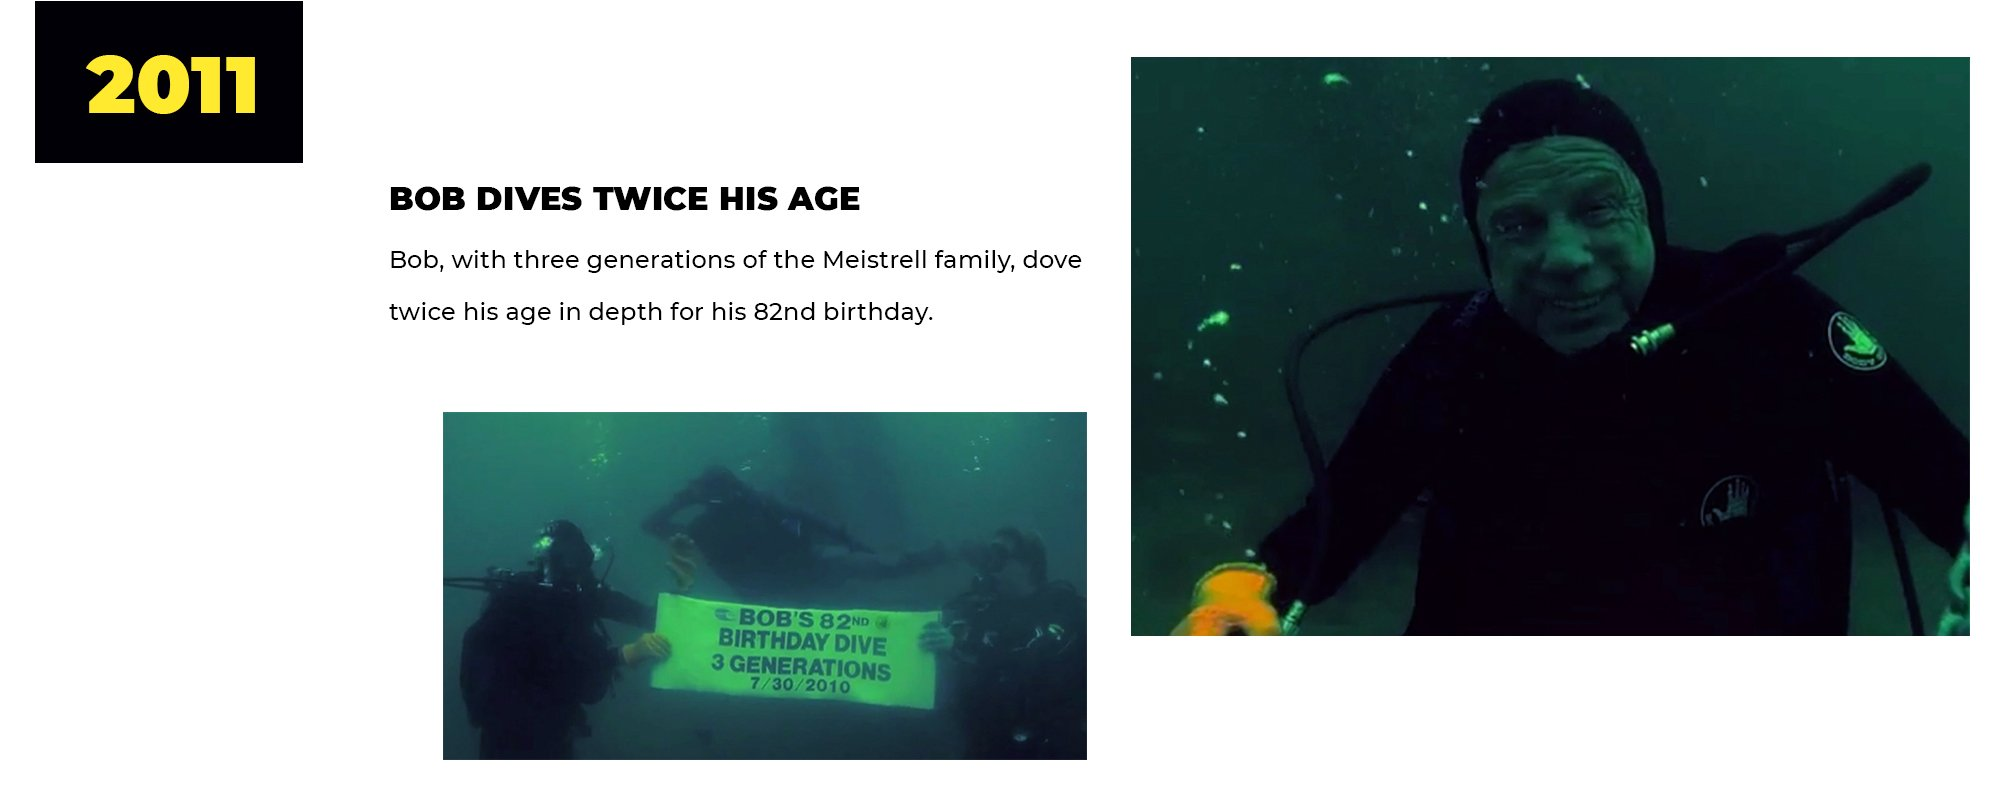 2011 | Bob Dives Twice His Age | Bob, with three generations of the Meistrell family, dove twice his age in depth for his 82nd birthday.